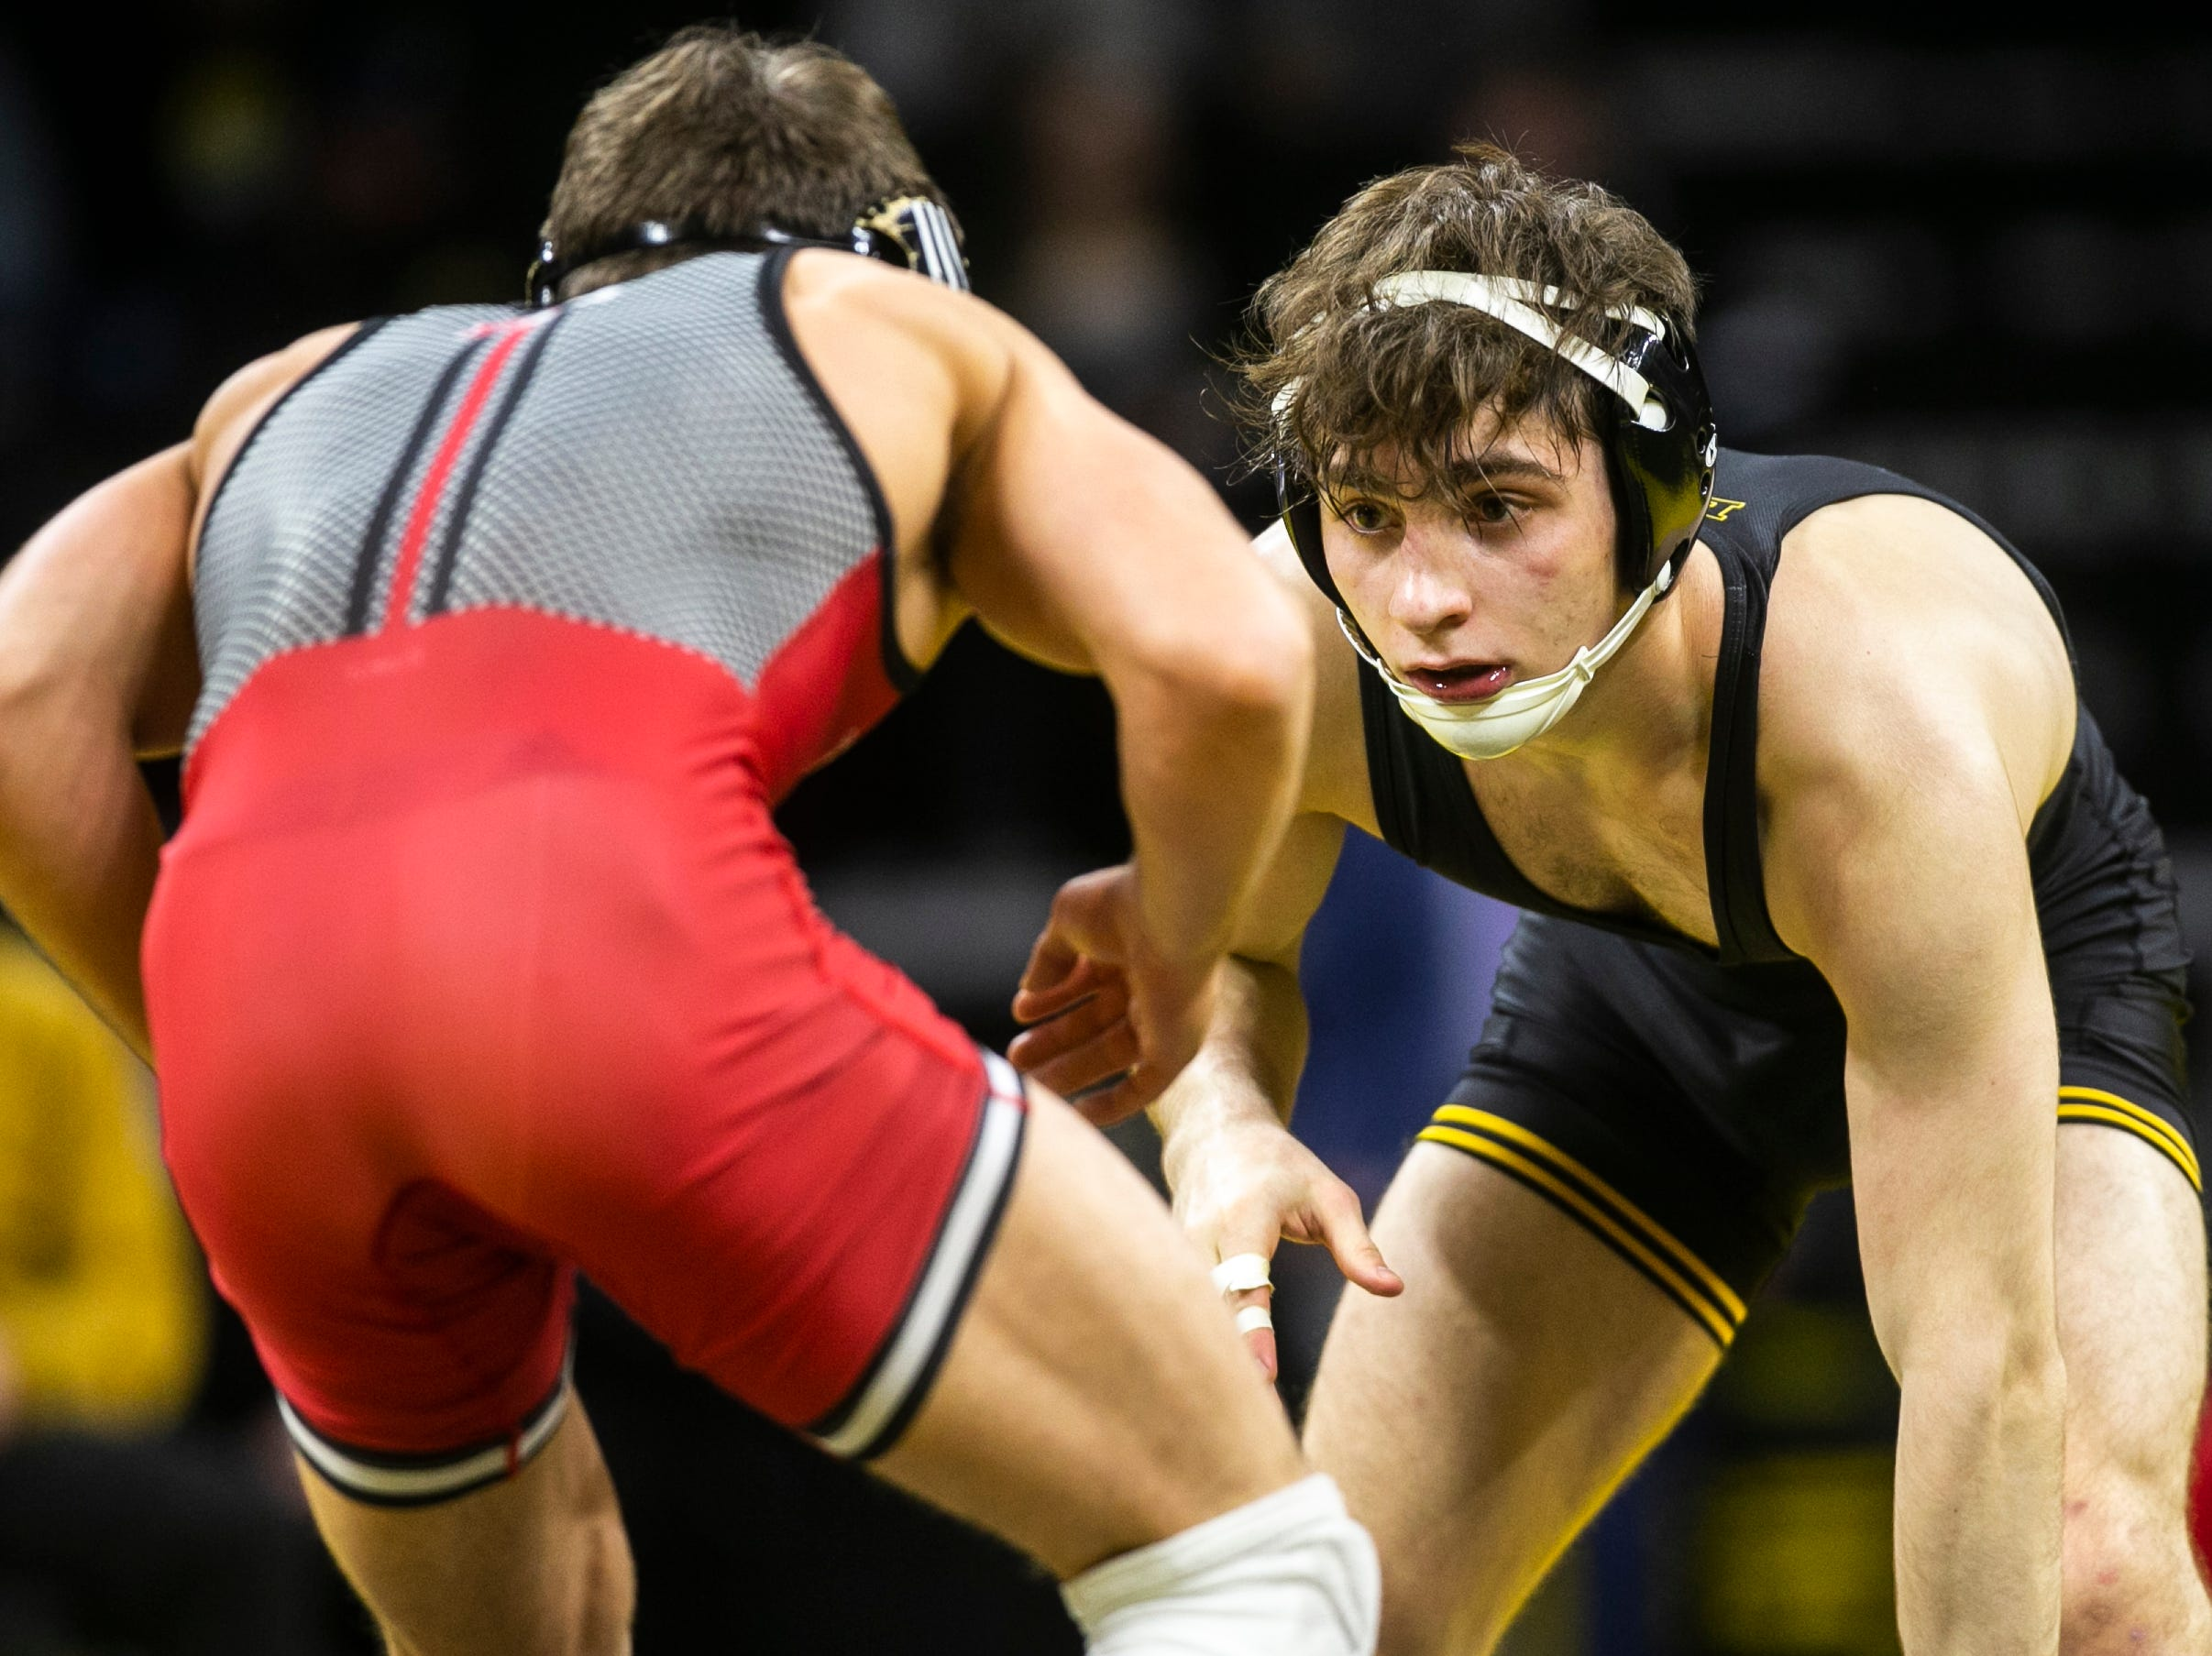 Iowa's Austin DeSanto, right, wrestles Rutgers' Nick Suriano at 133 during a NCAA Big Ten Conference wrestling dual on Friday, Jan. 18, 2019, at Carver-Hawkeye Arena in Iowa City, Iowa.